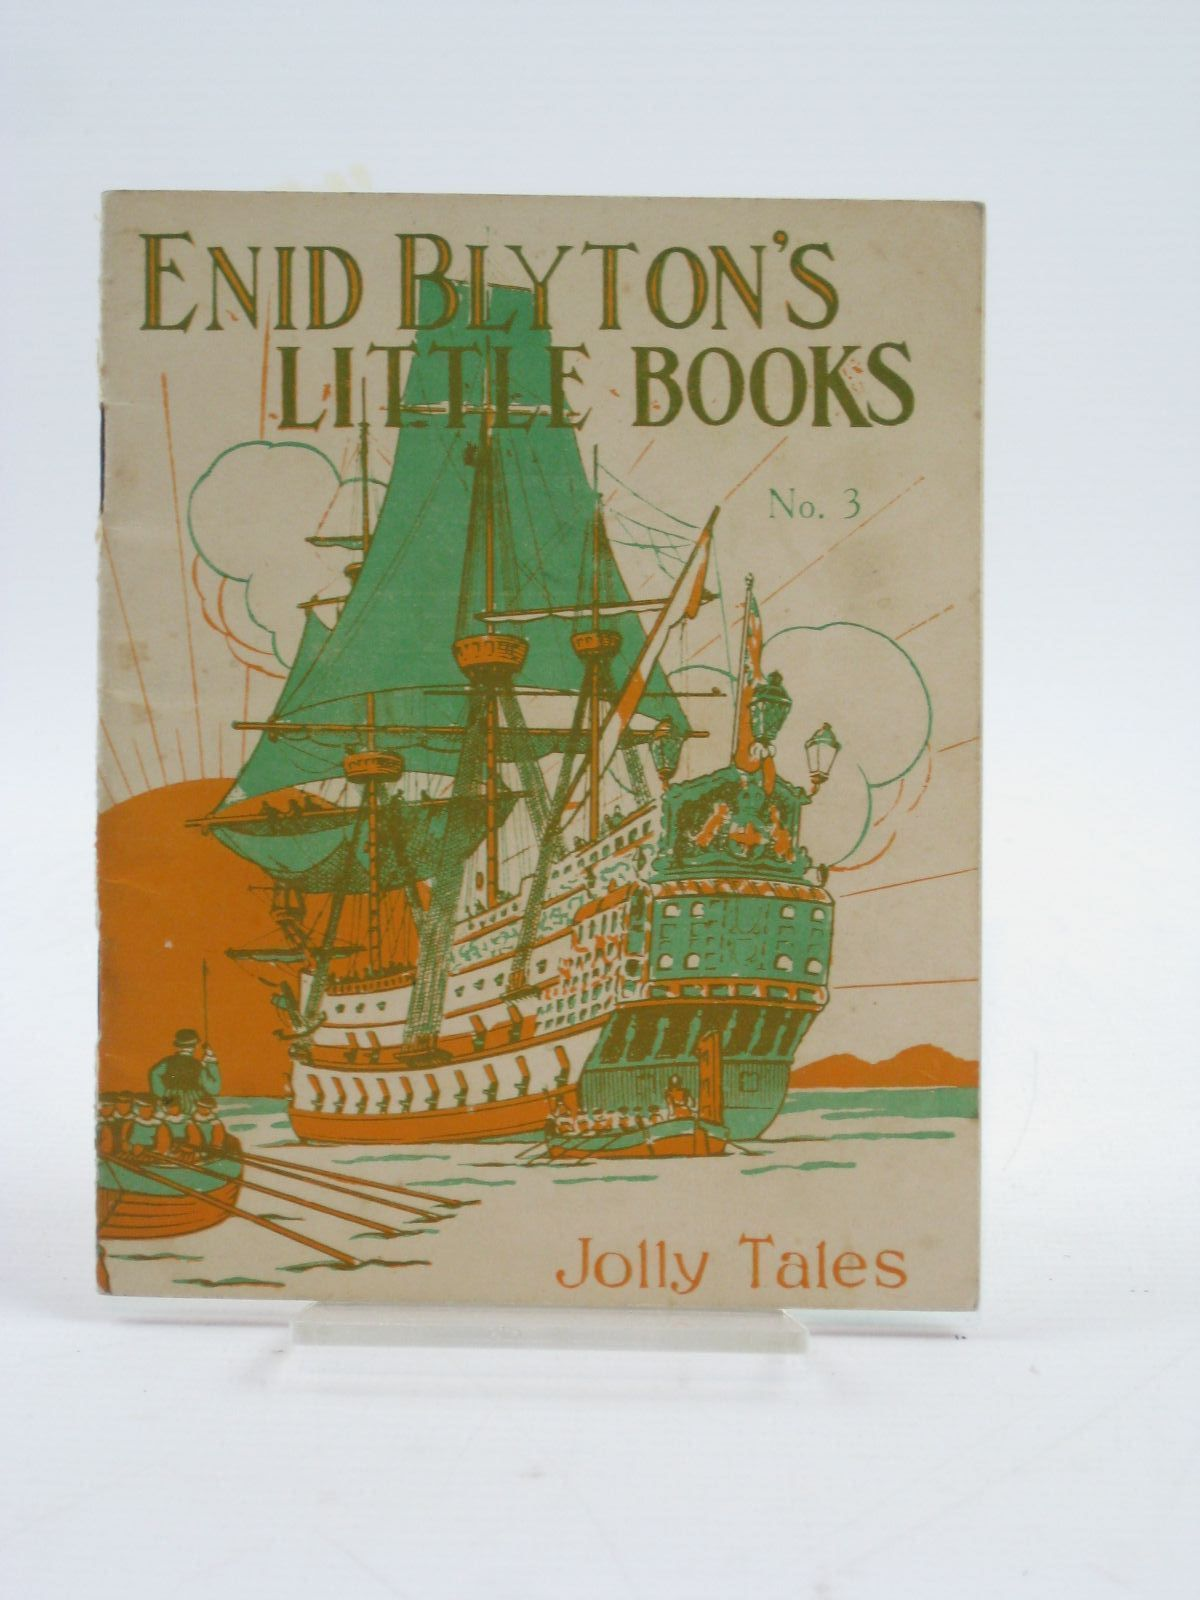 Photo of ENID BLYTON'S LITTLE BOOKS NO. 3 - JOLLY TALES written by Blyton, Enid illustrated by Kerr, Alfred E. published by Evans Brothers Limited (STOCK CODE: 1406628)  for sale by Stella & Rose's Books